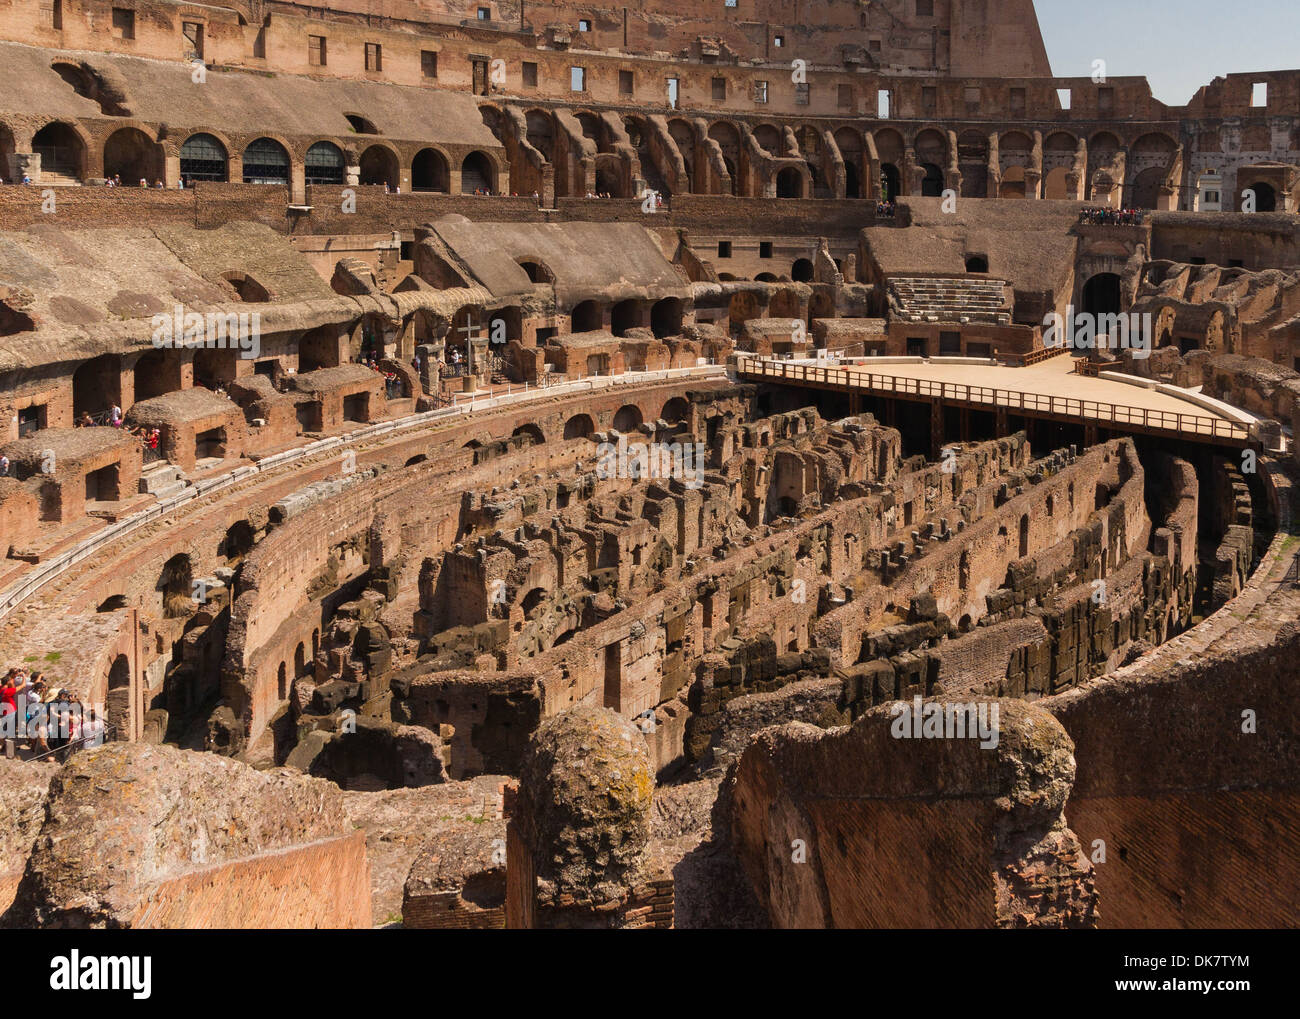 The oval of the arena of the Colosseum, view over the underground. Rome, Italy. - Stock Image